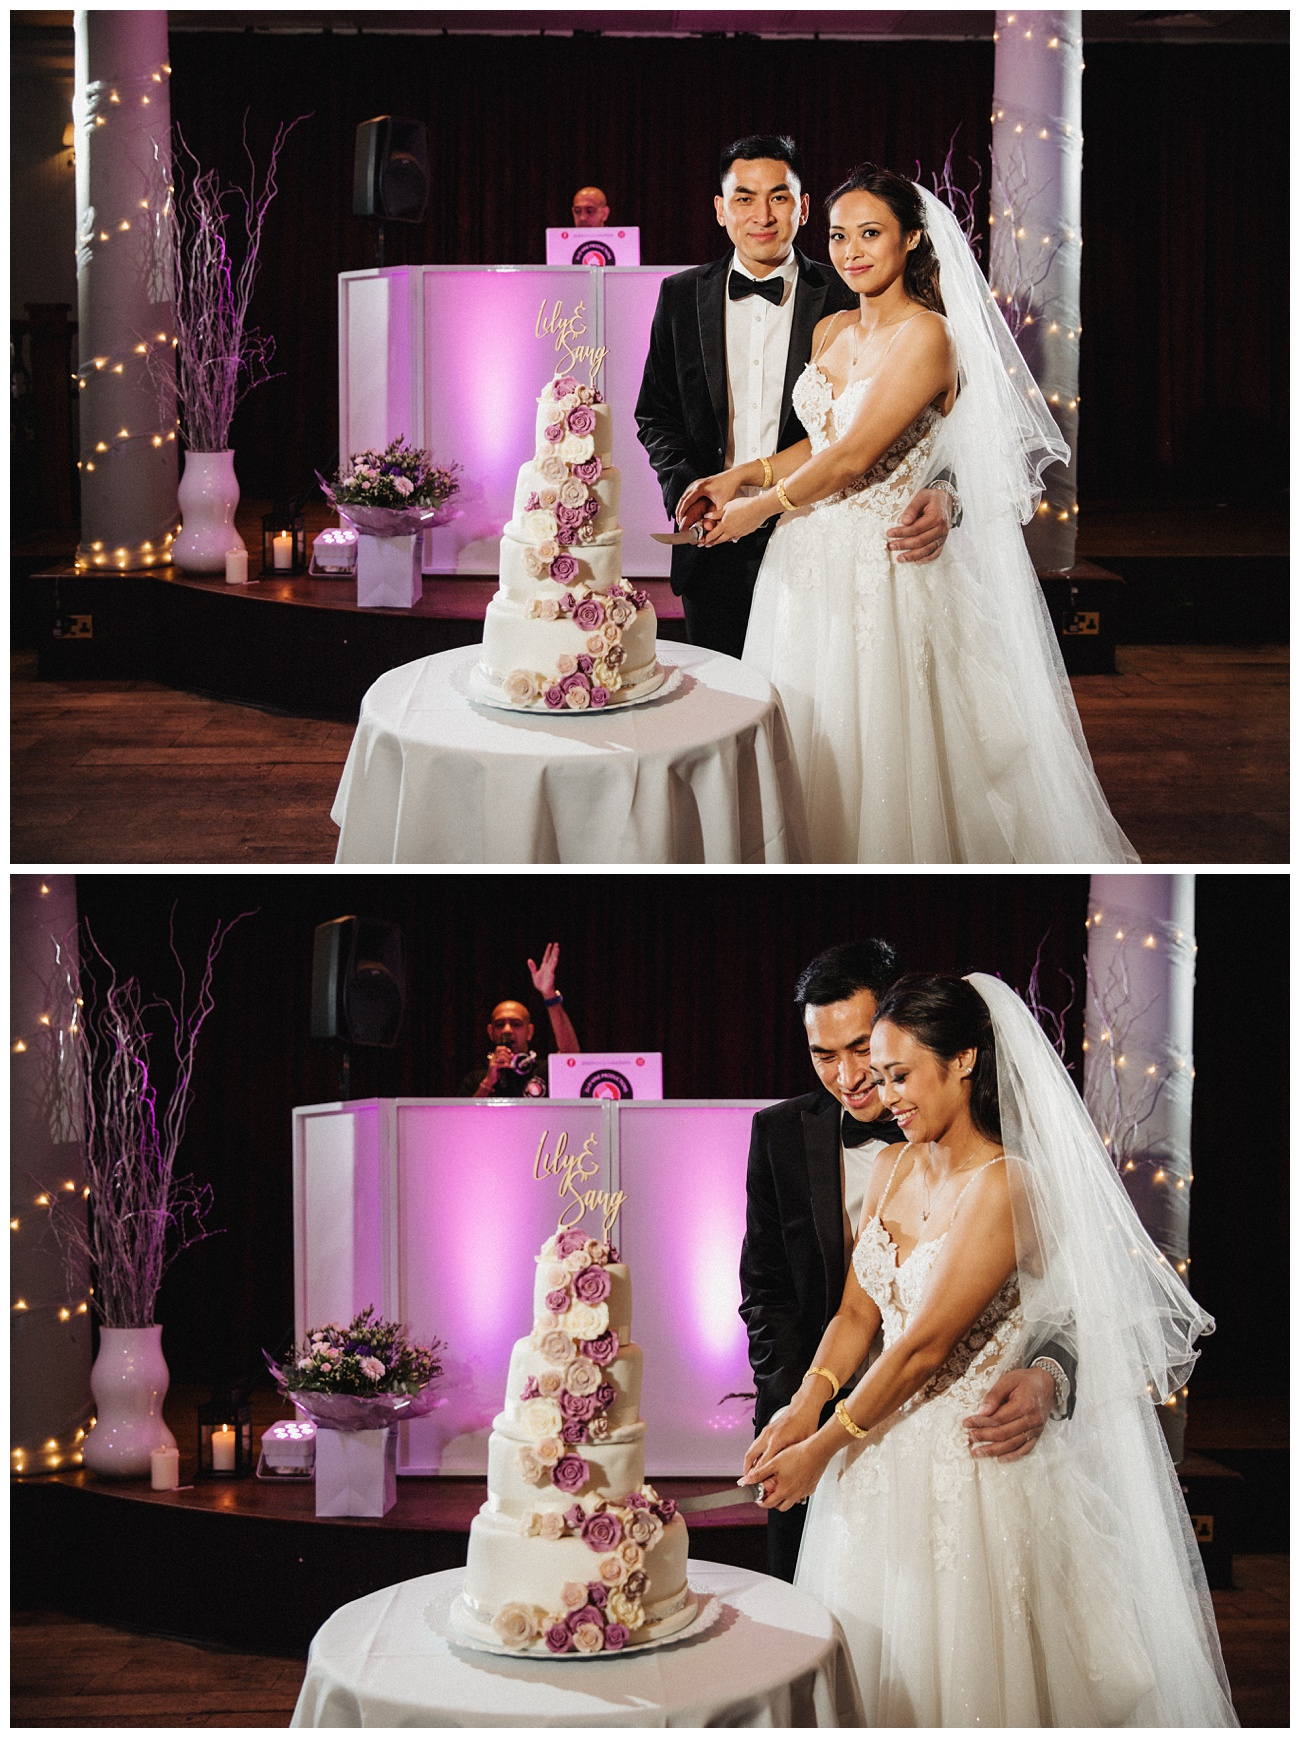 The cutting of the cake inside the reception room